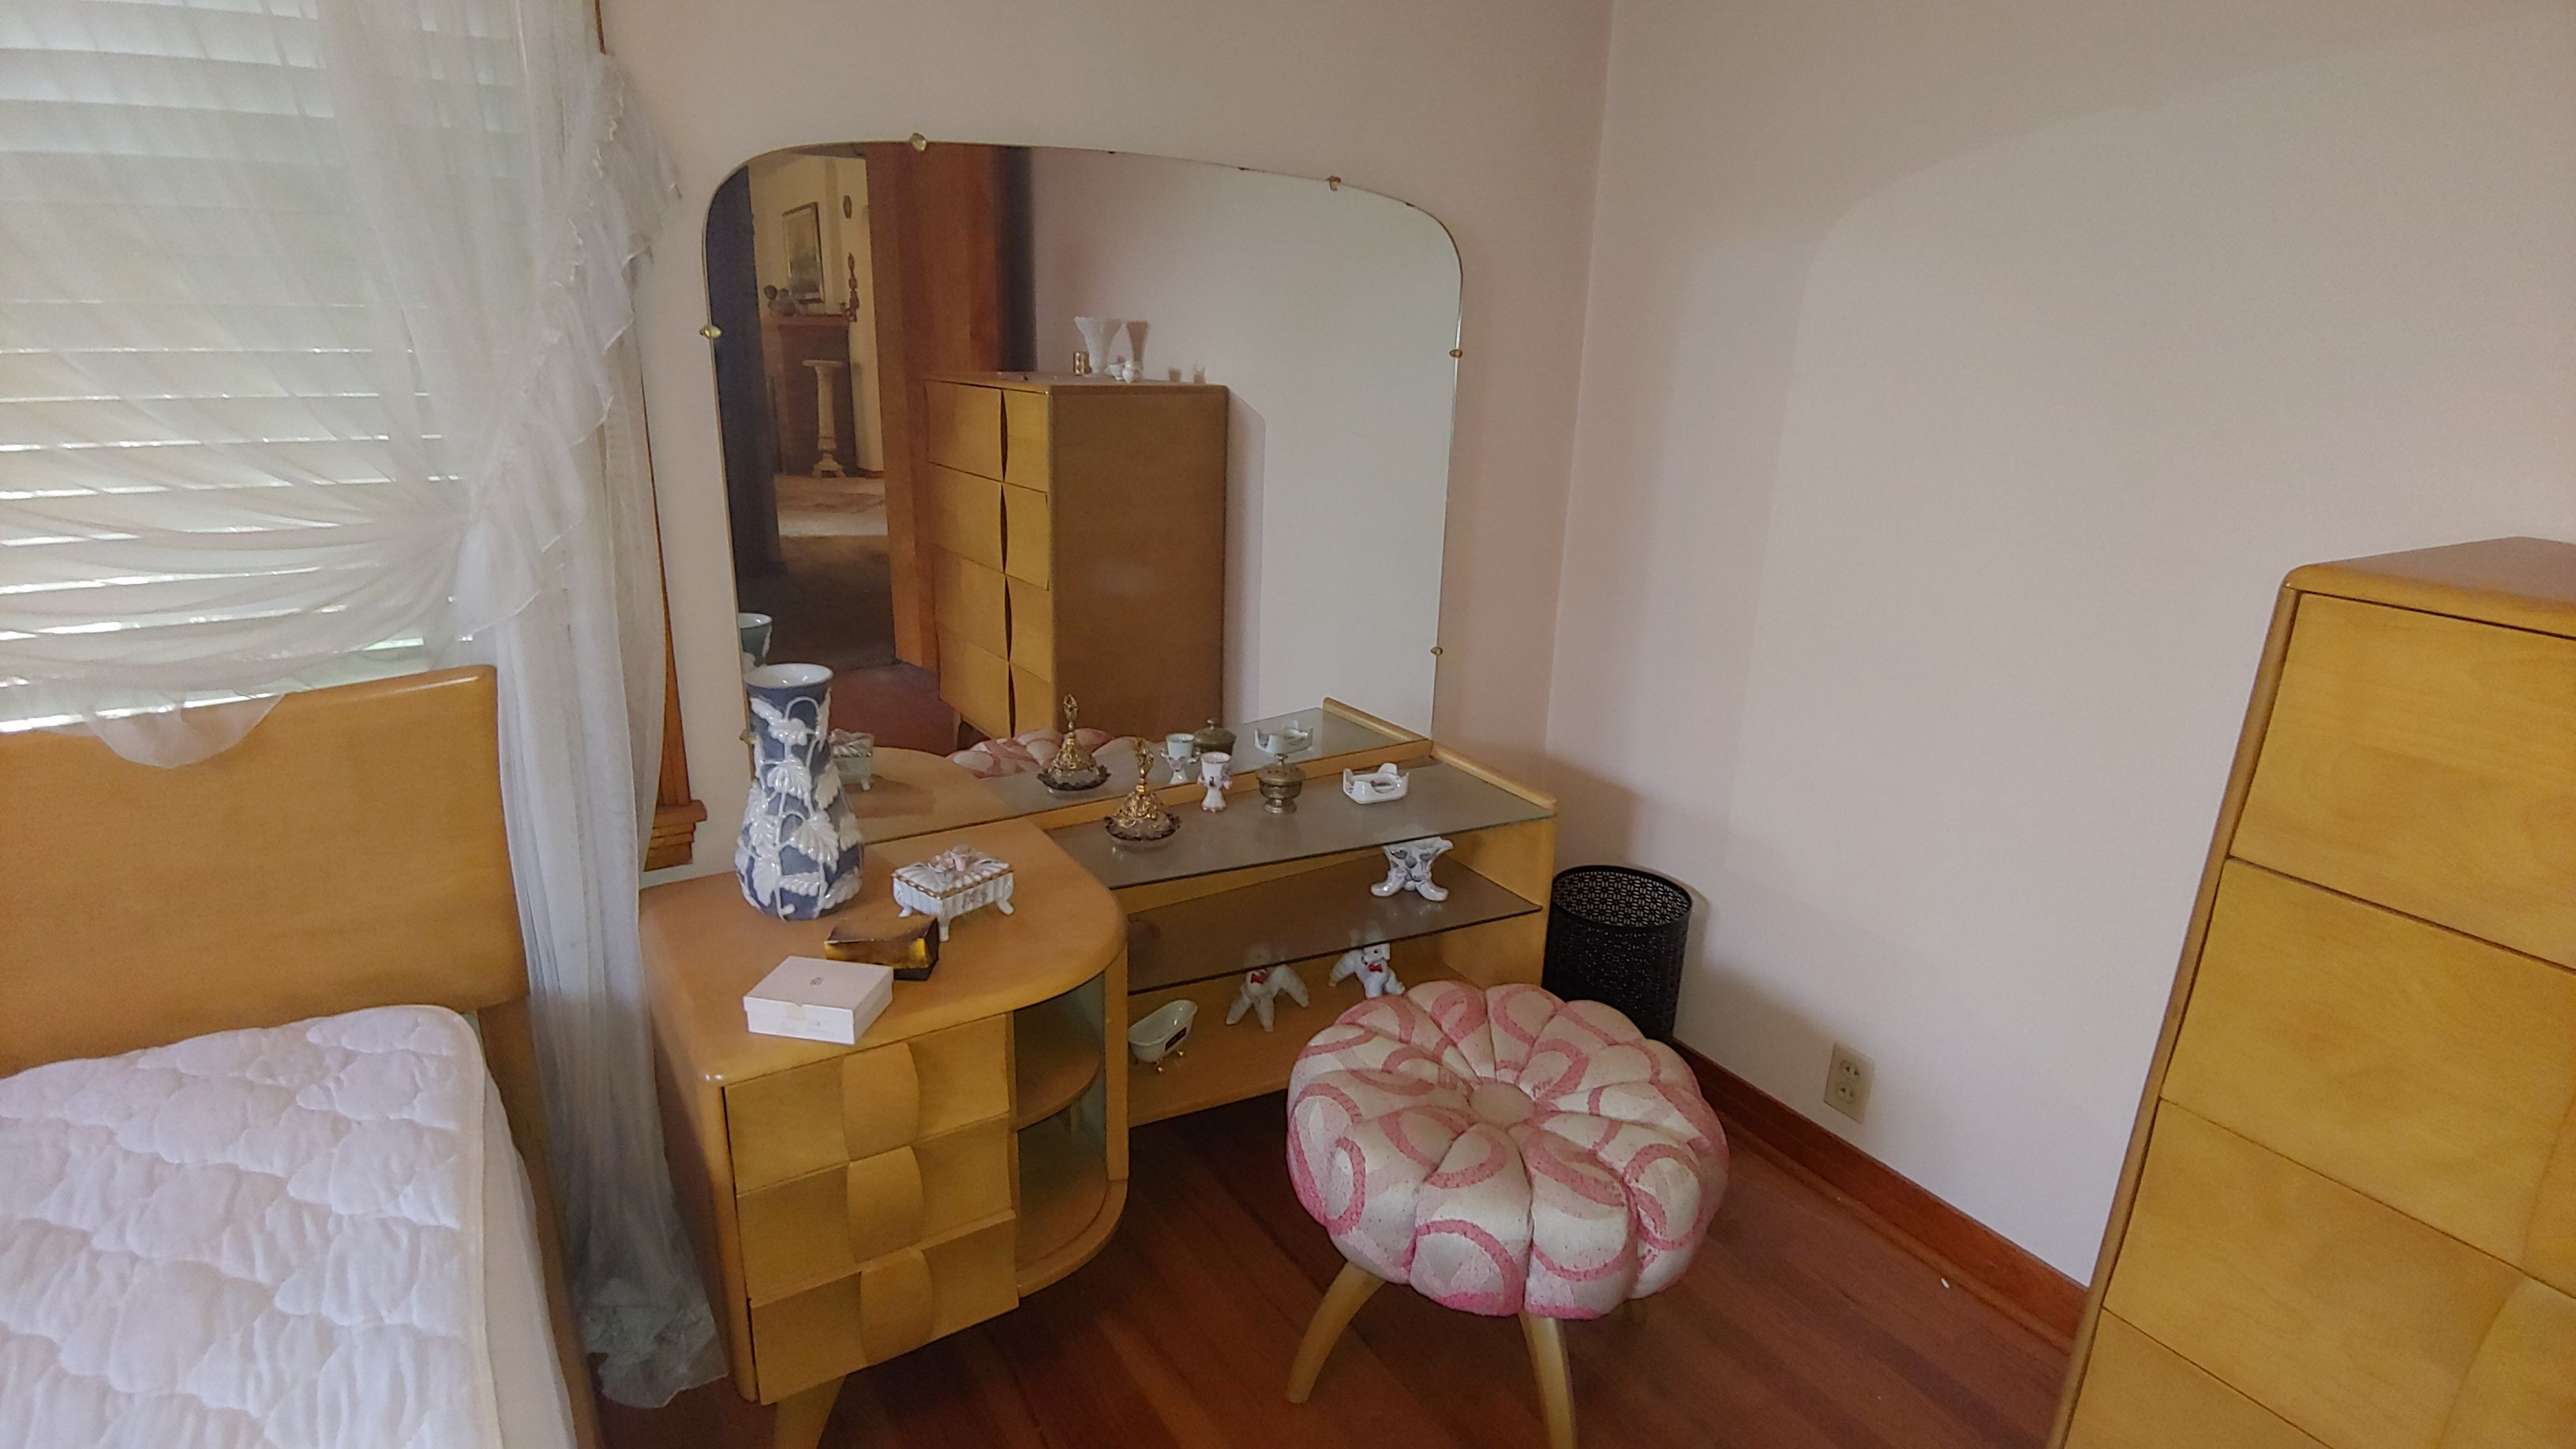 Item 33 in Real Estate and Personal Property Auction gallery